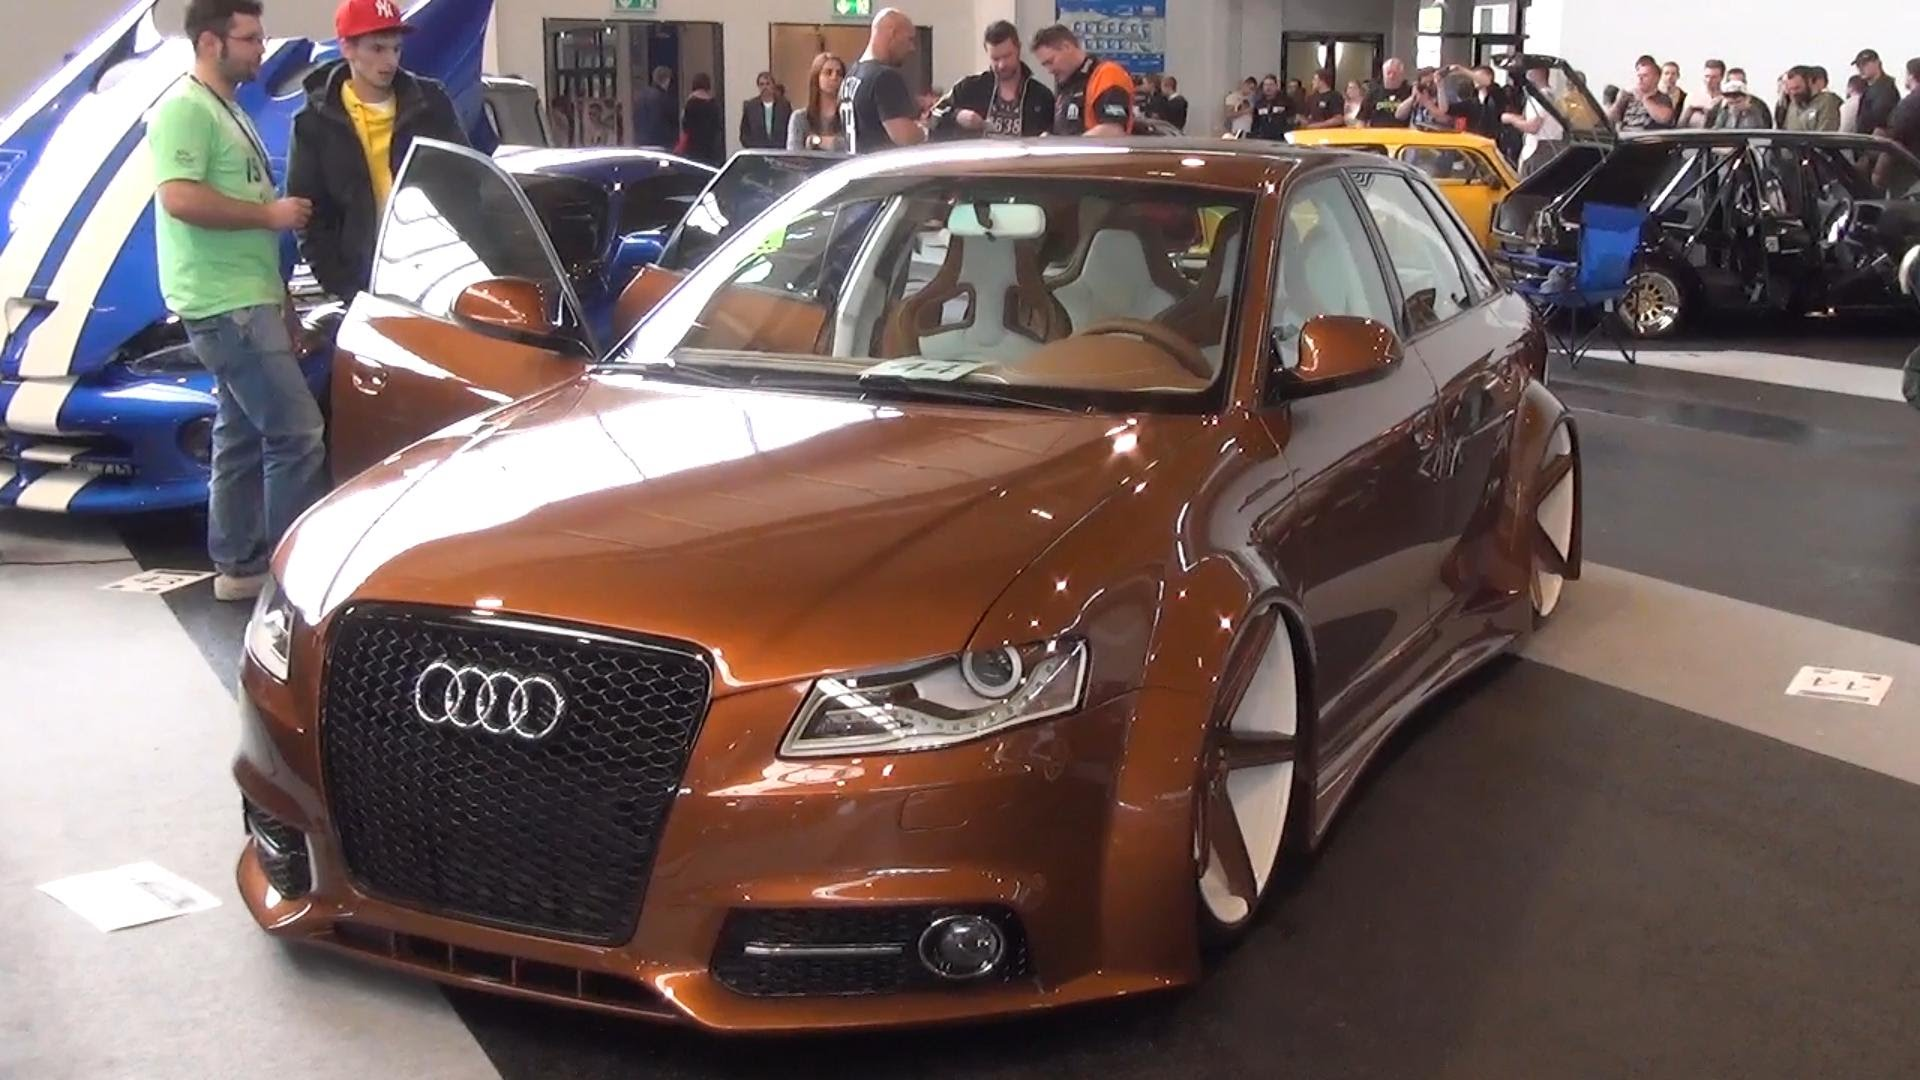 Audi A3 8L with A4 Front Single Frame 20 wheels Widebody Bodykit 1920x1080